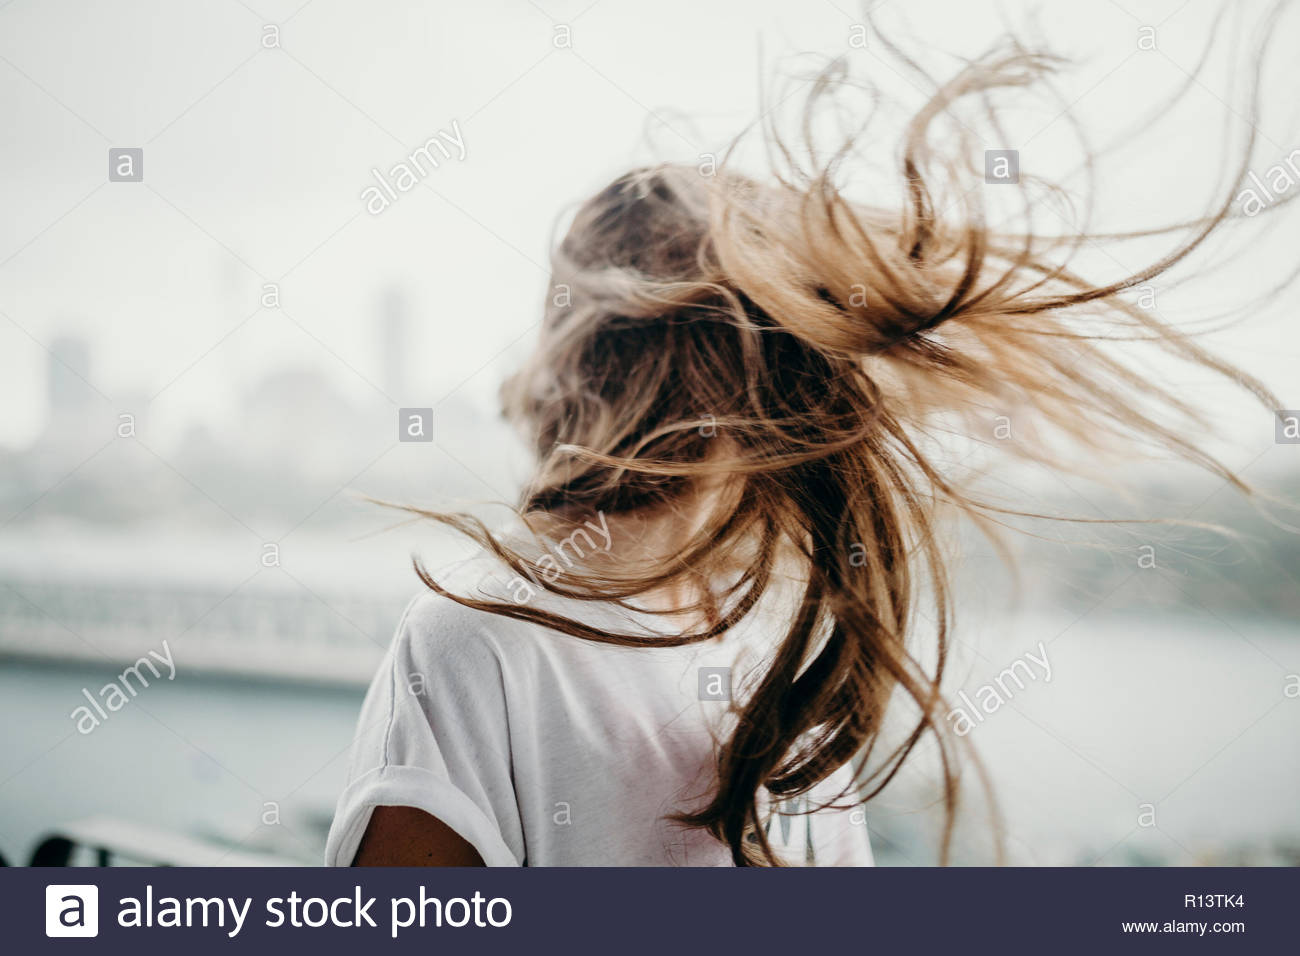 Action shot of a girl tossing her hair back - Stock Image